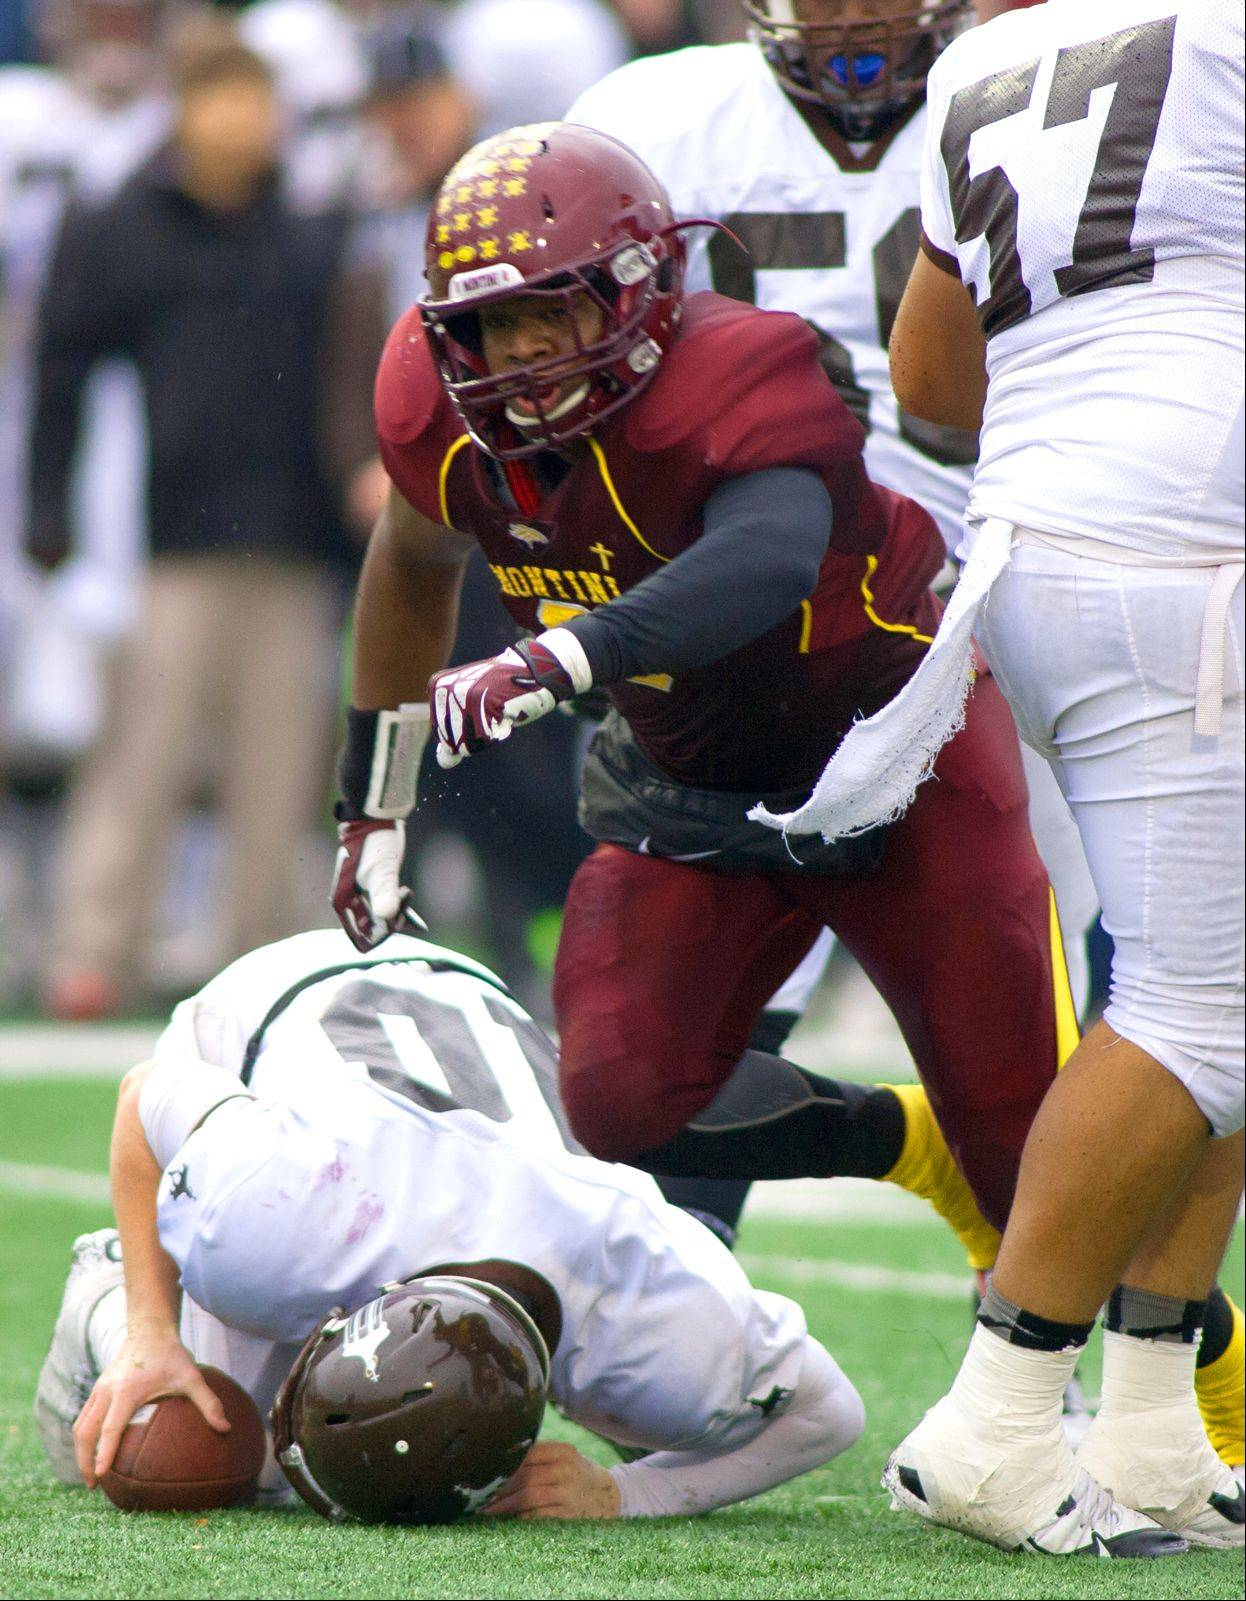 Montini Catholic�s Niles Sykes celebrates a sack against Joliet Catholic quarterback Nick Morrison.